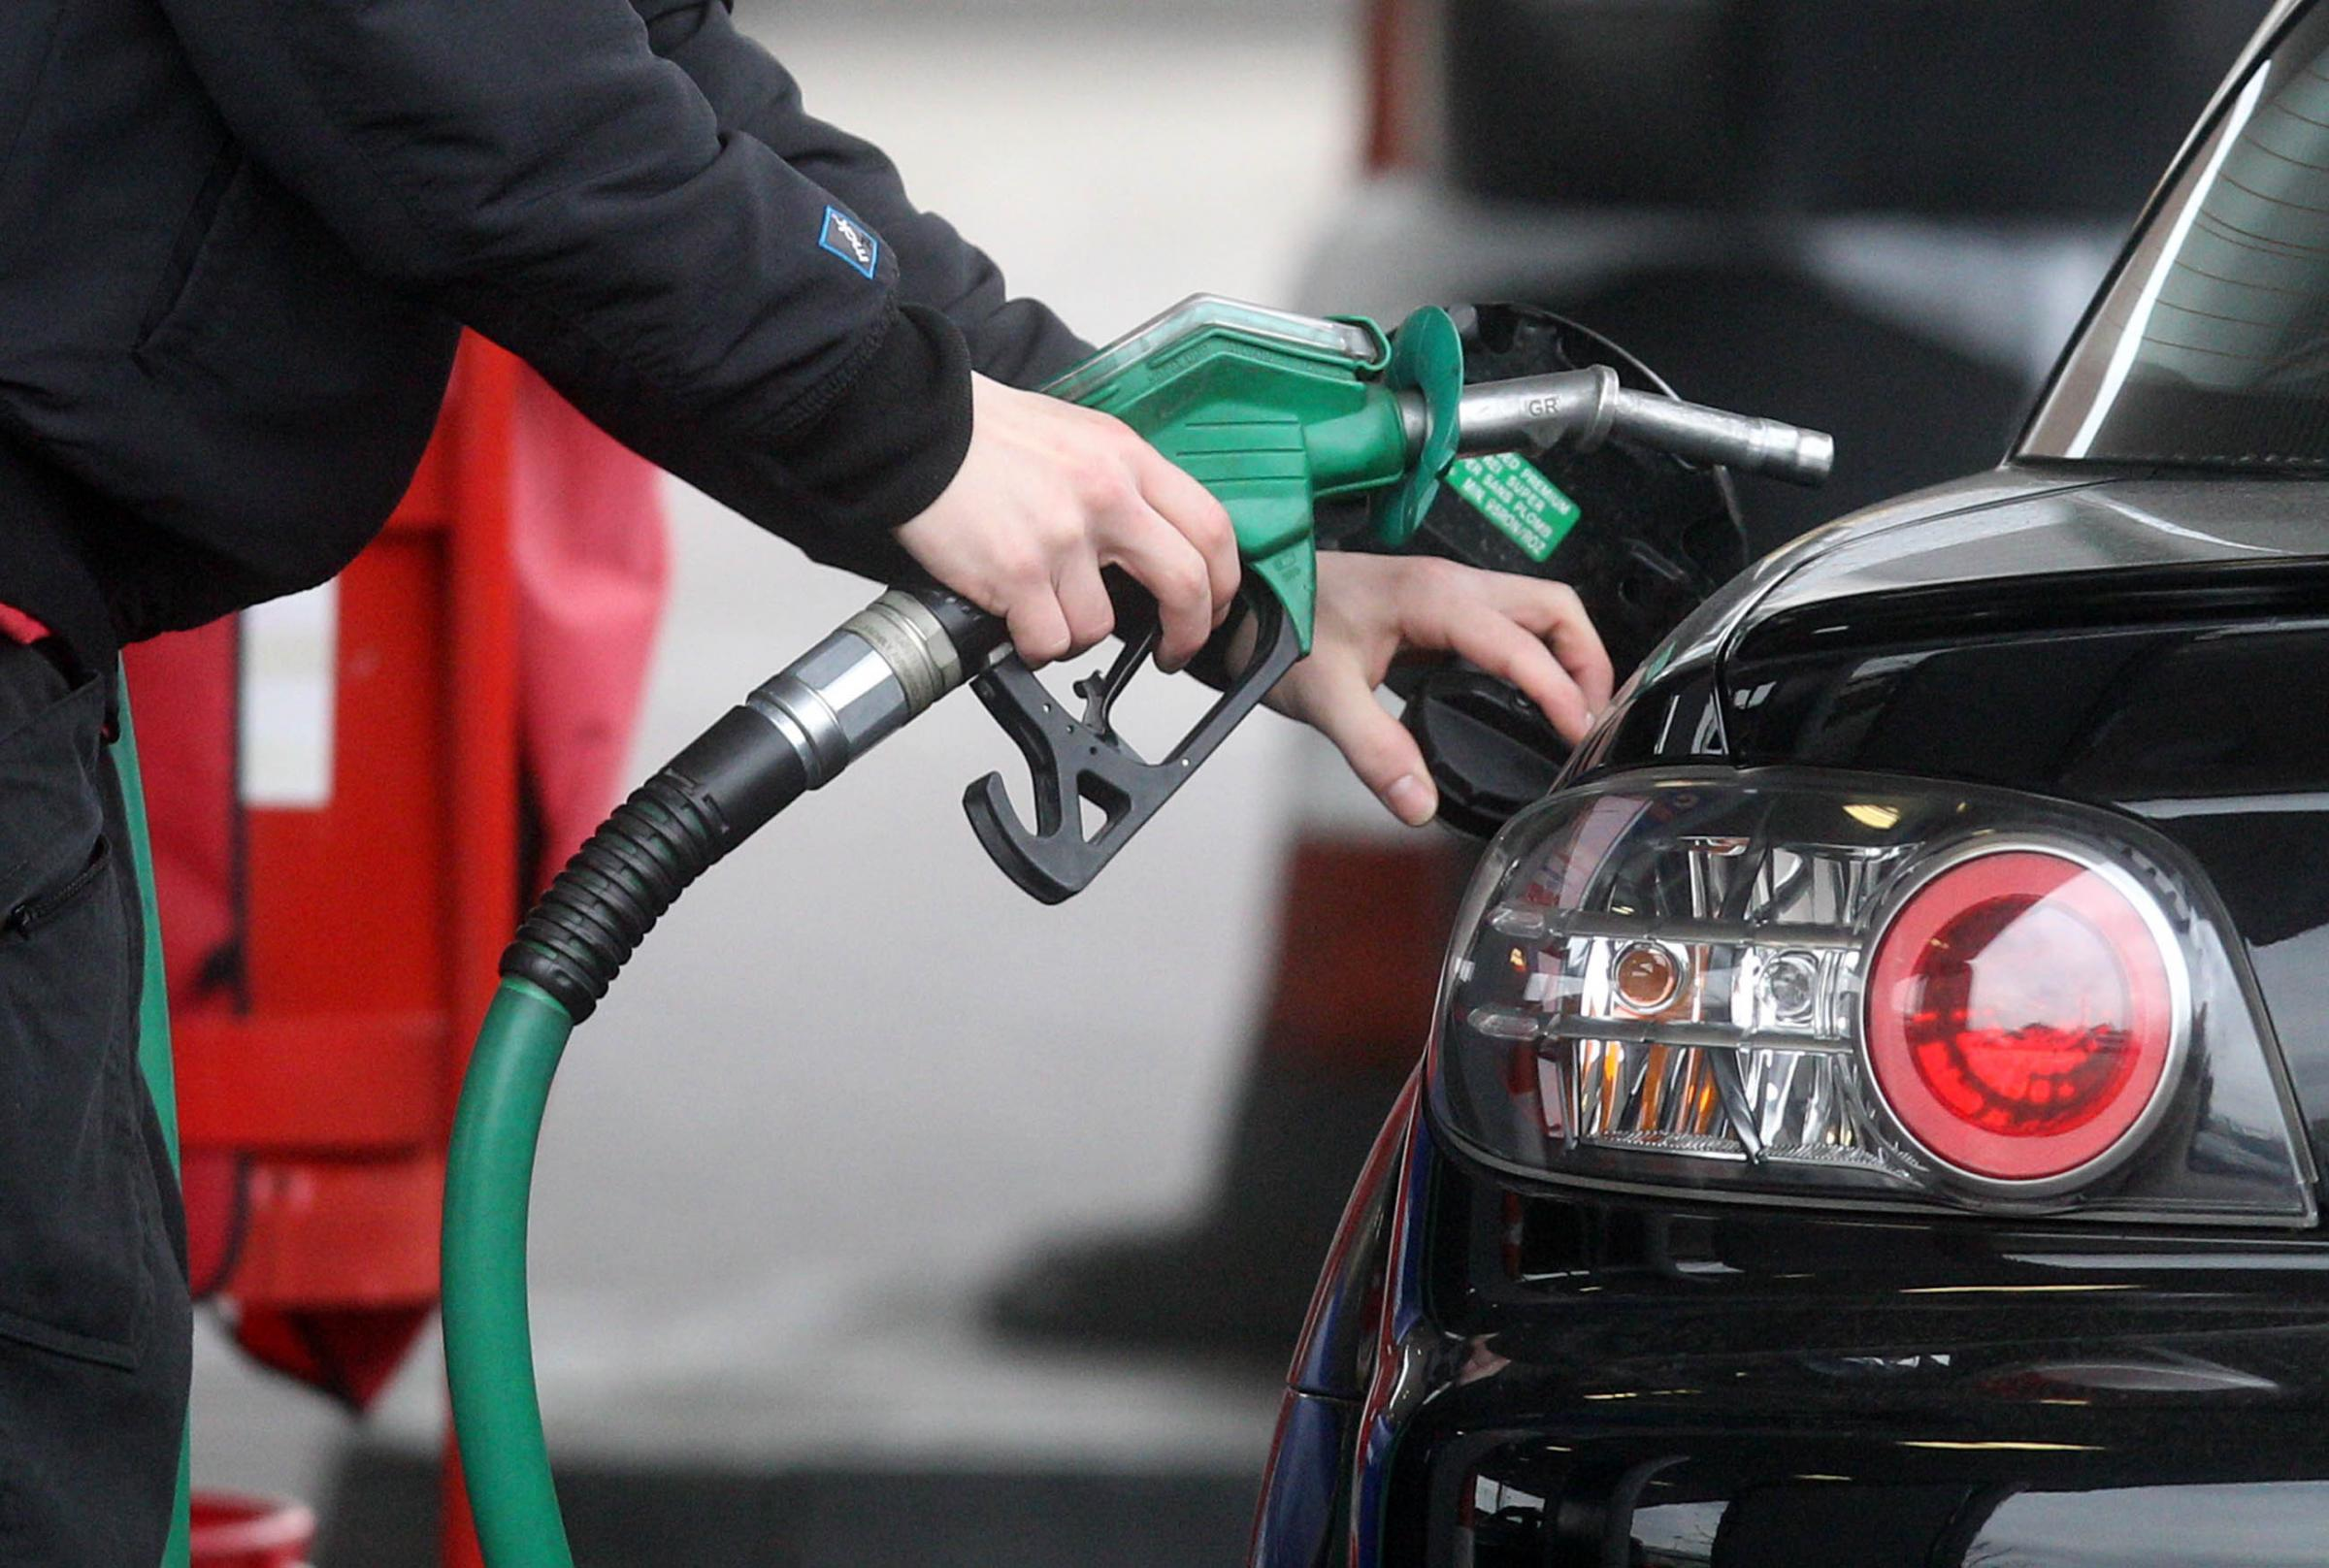 BEIS Committee: Ban new petrol and diesel cars by 2032, not 2040